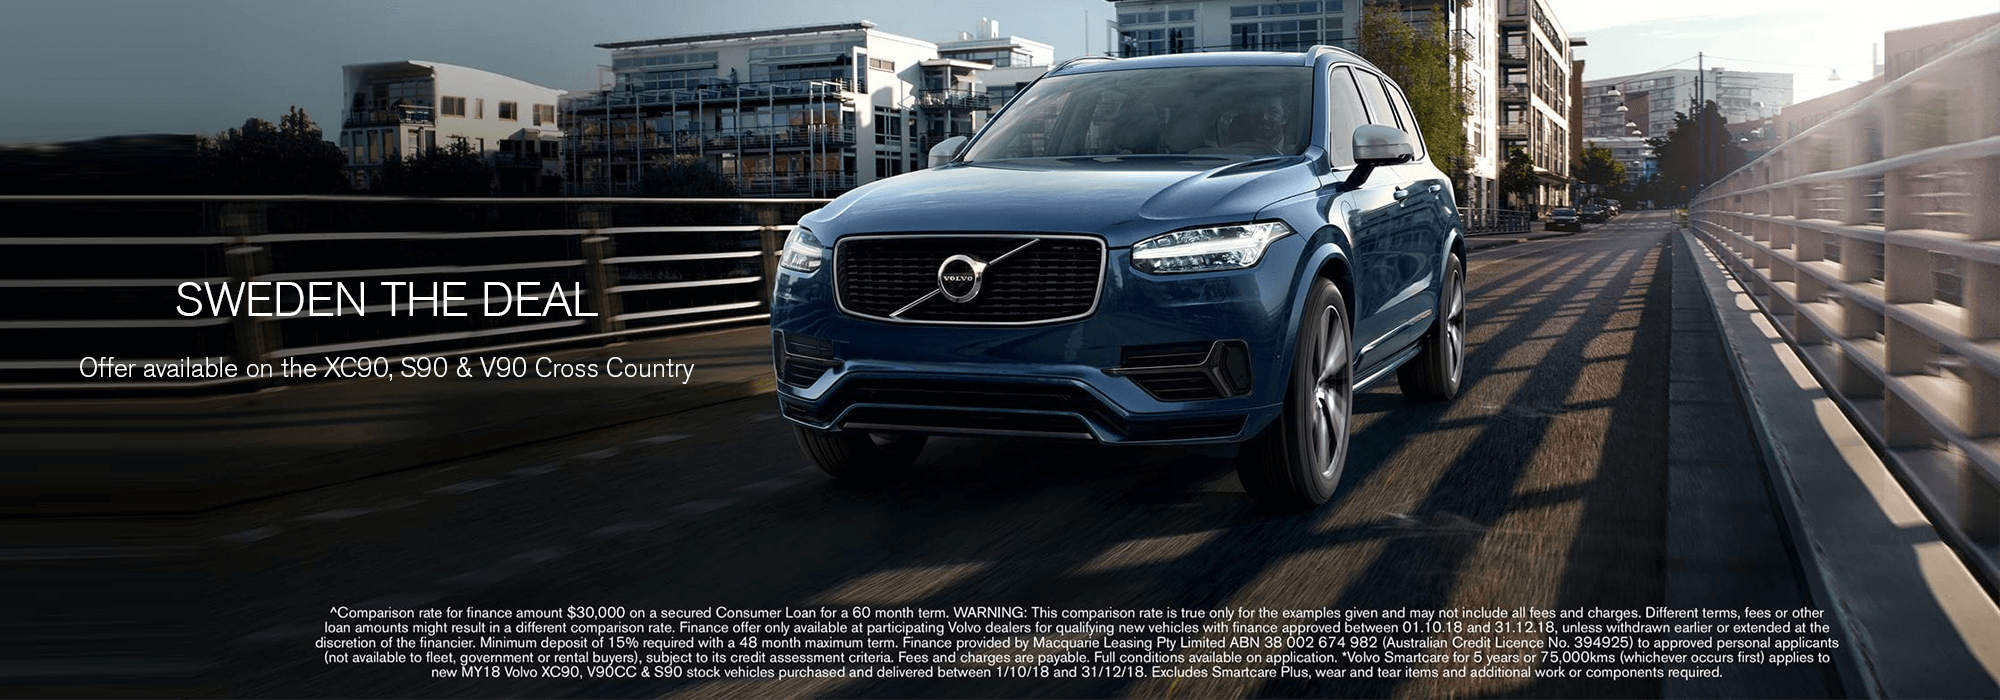 Visit your local Volvo dealer before October 31 to take advantage of 1.9%­ p.a. comparison rate^ finance with a 15% deposit across the entire Volvo 90 series, but do it before September 30. Offer on while stocks last.